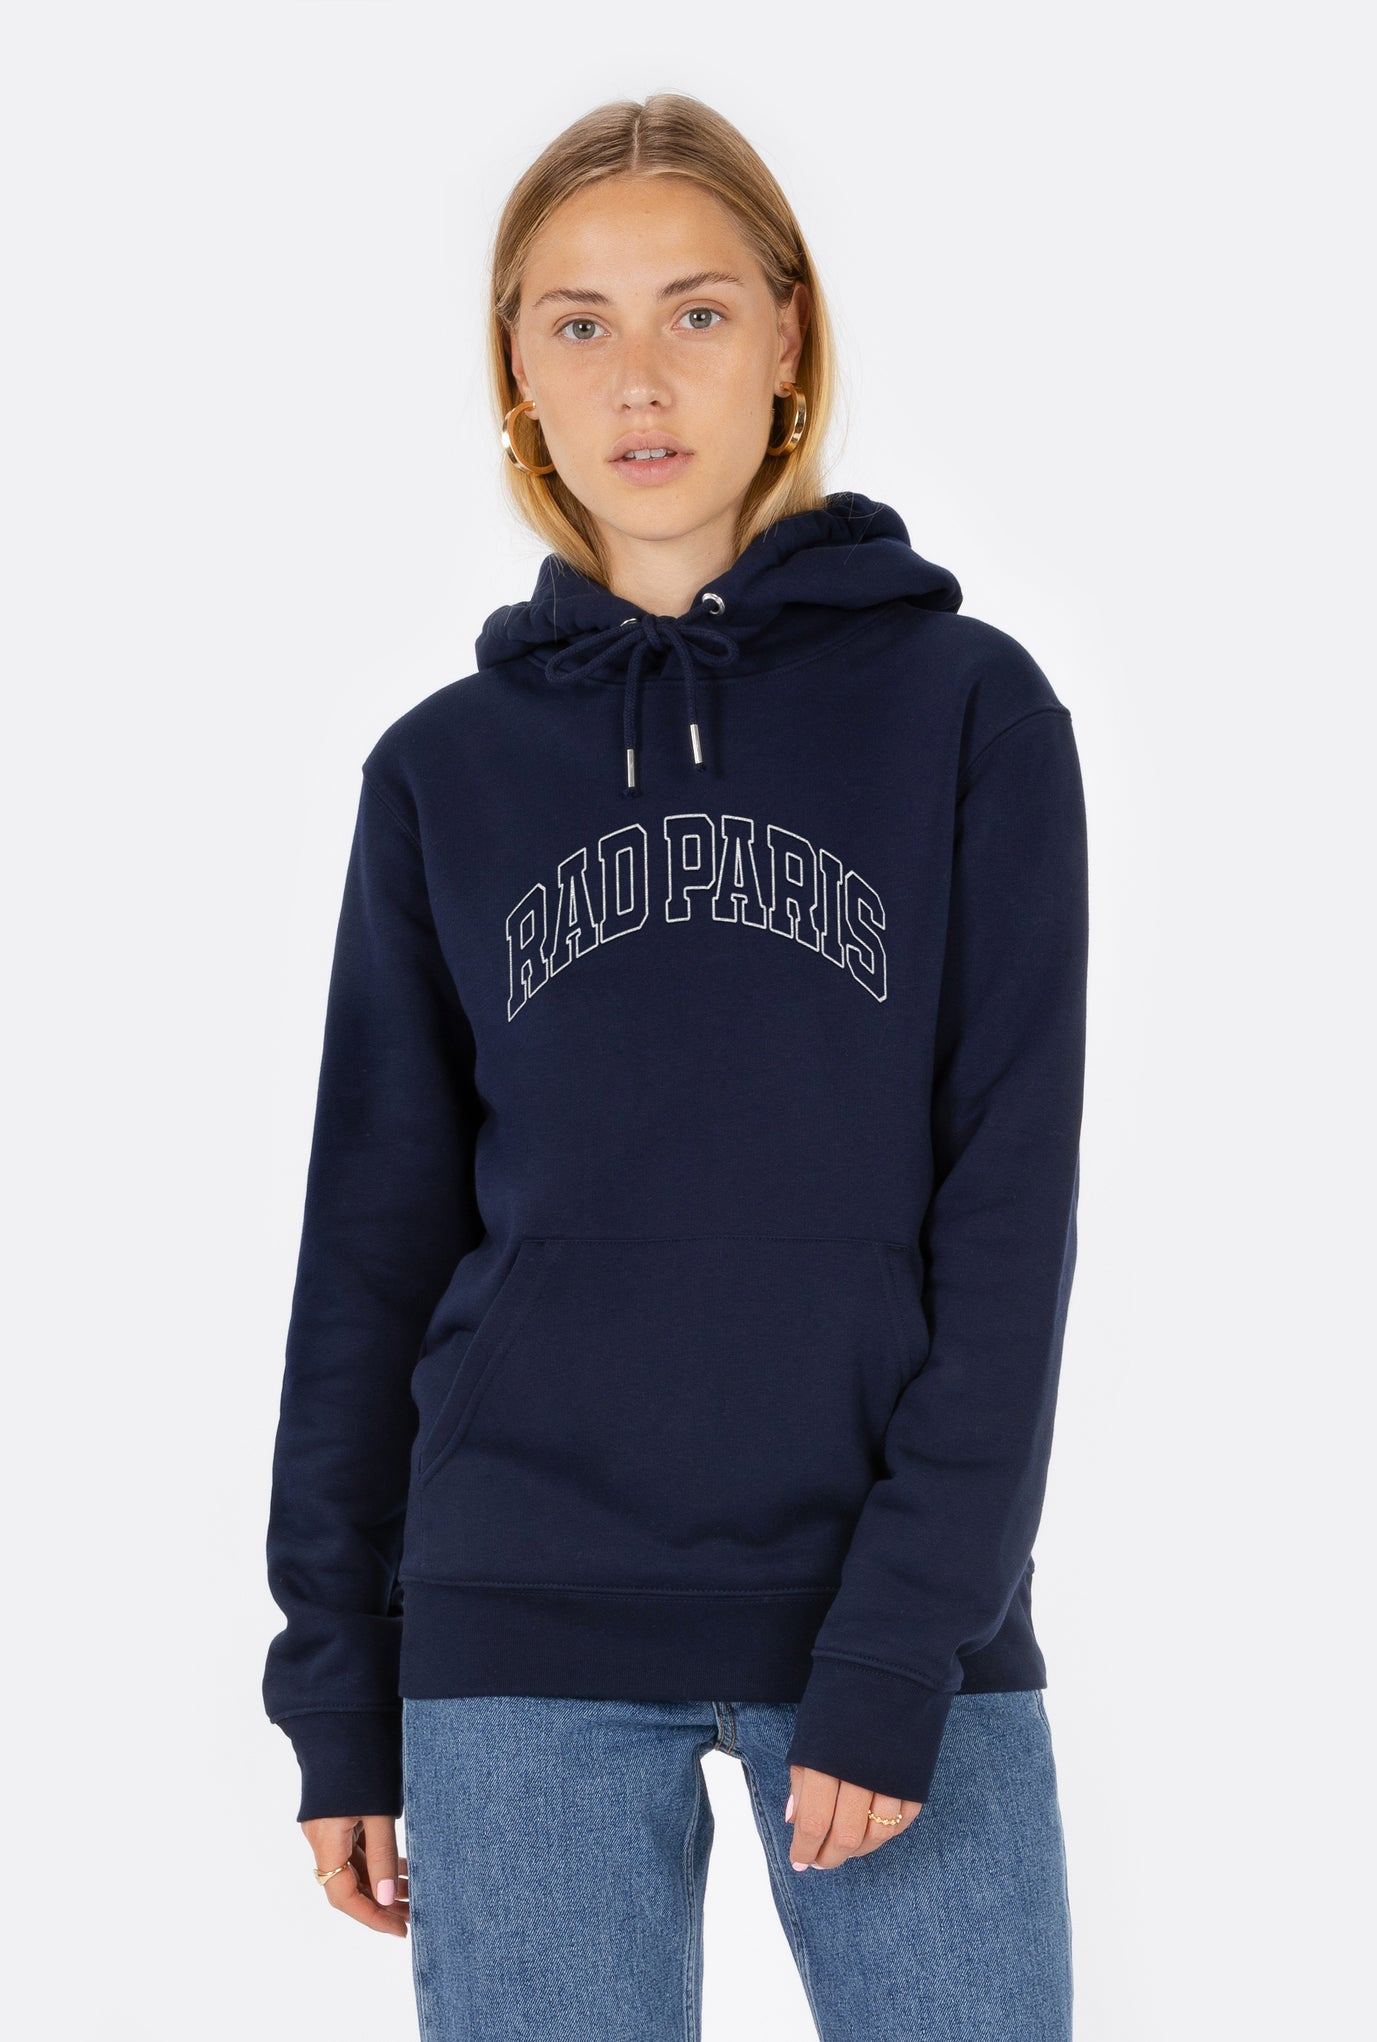 Hoodie Rad Paris - Embroidered